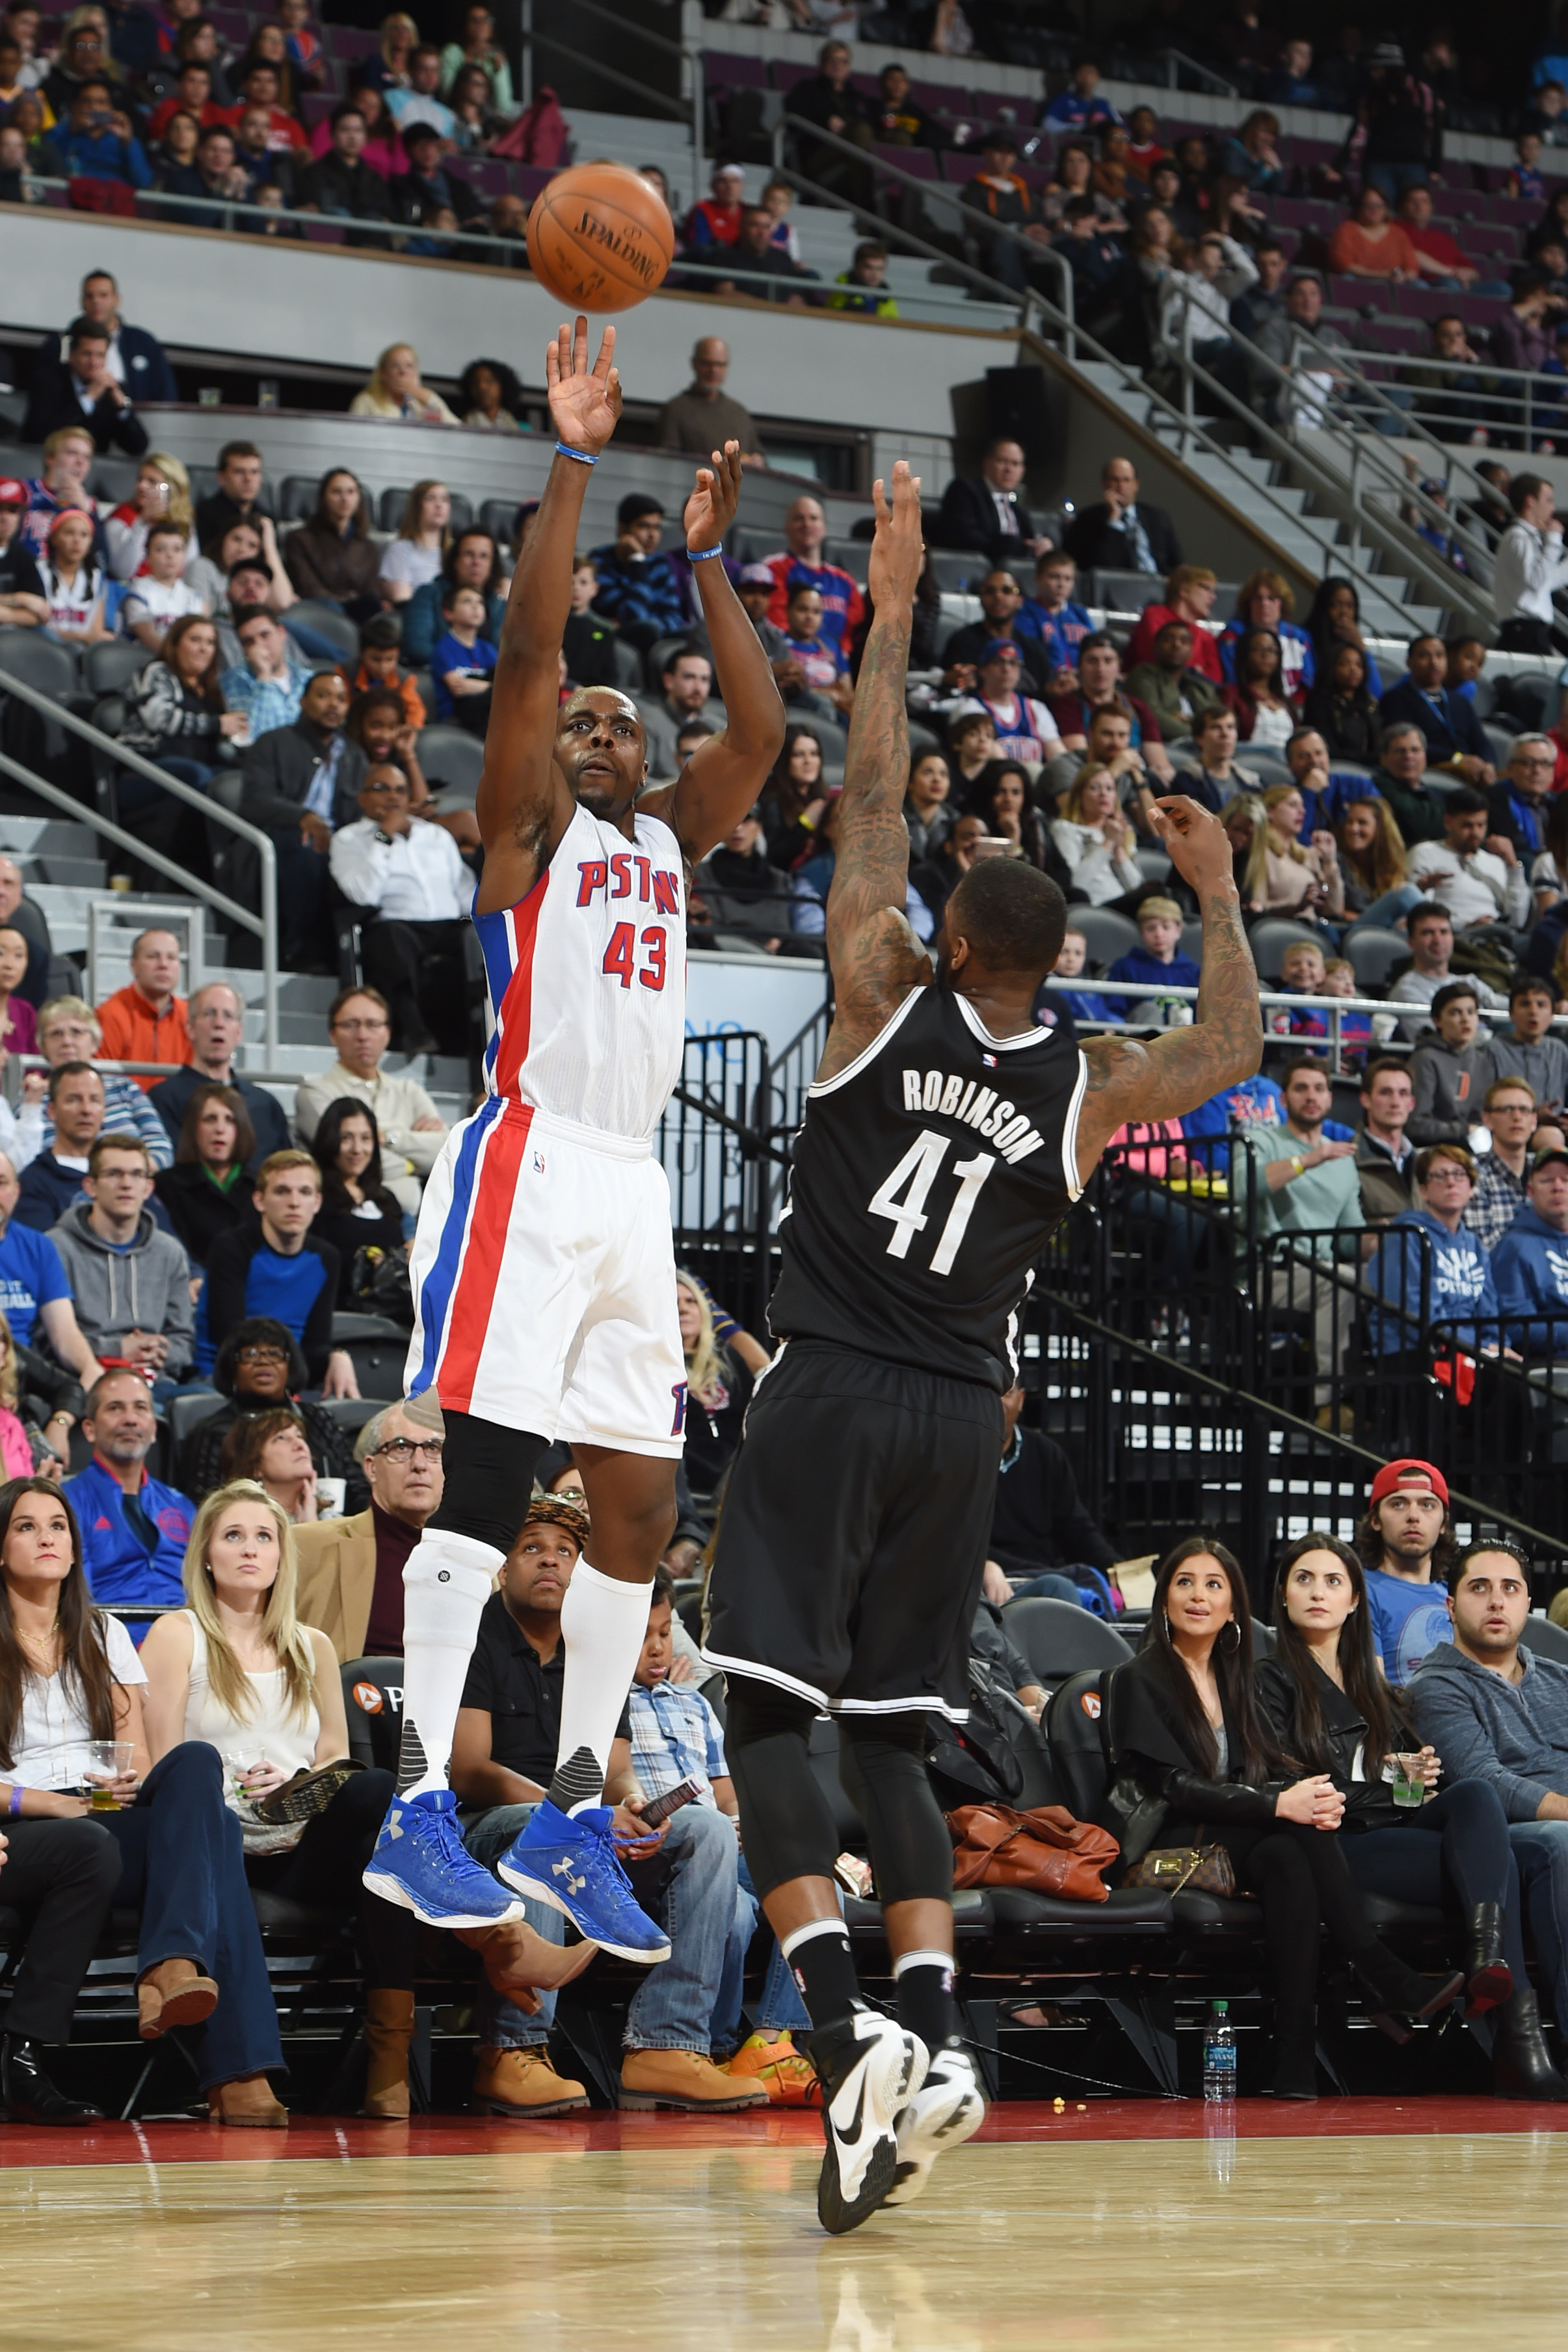 AUBURN HILLS, MI  - MARCH 19: Anthony Tolliver #43 of the Detroit Pistons shoots against Thomas Robinson #41 of the Brooklyn Nets during the game on March 19, 2016 at The Palace of Auburn Hills in Auburn Hills, Michigan. (Photo by Allen Einstein/NBAE via